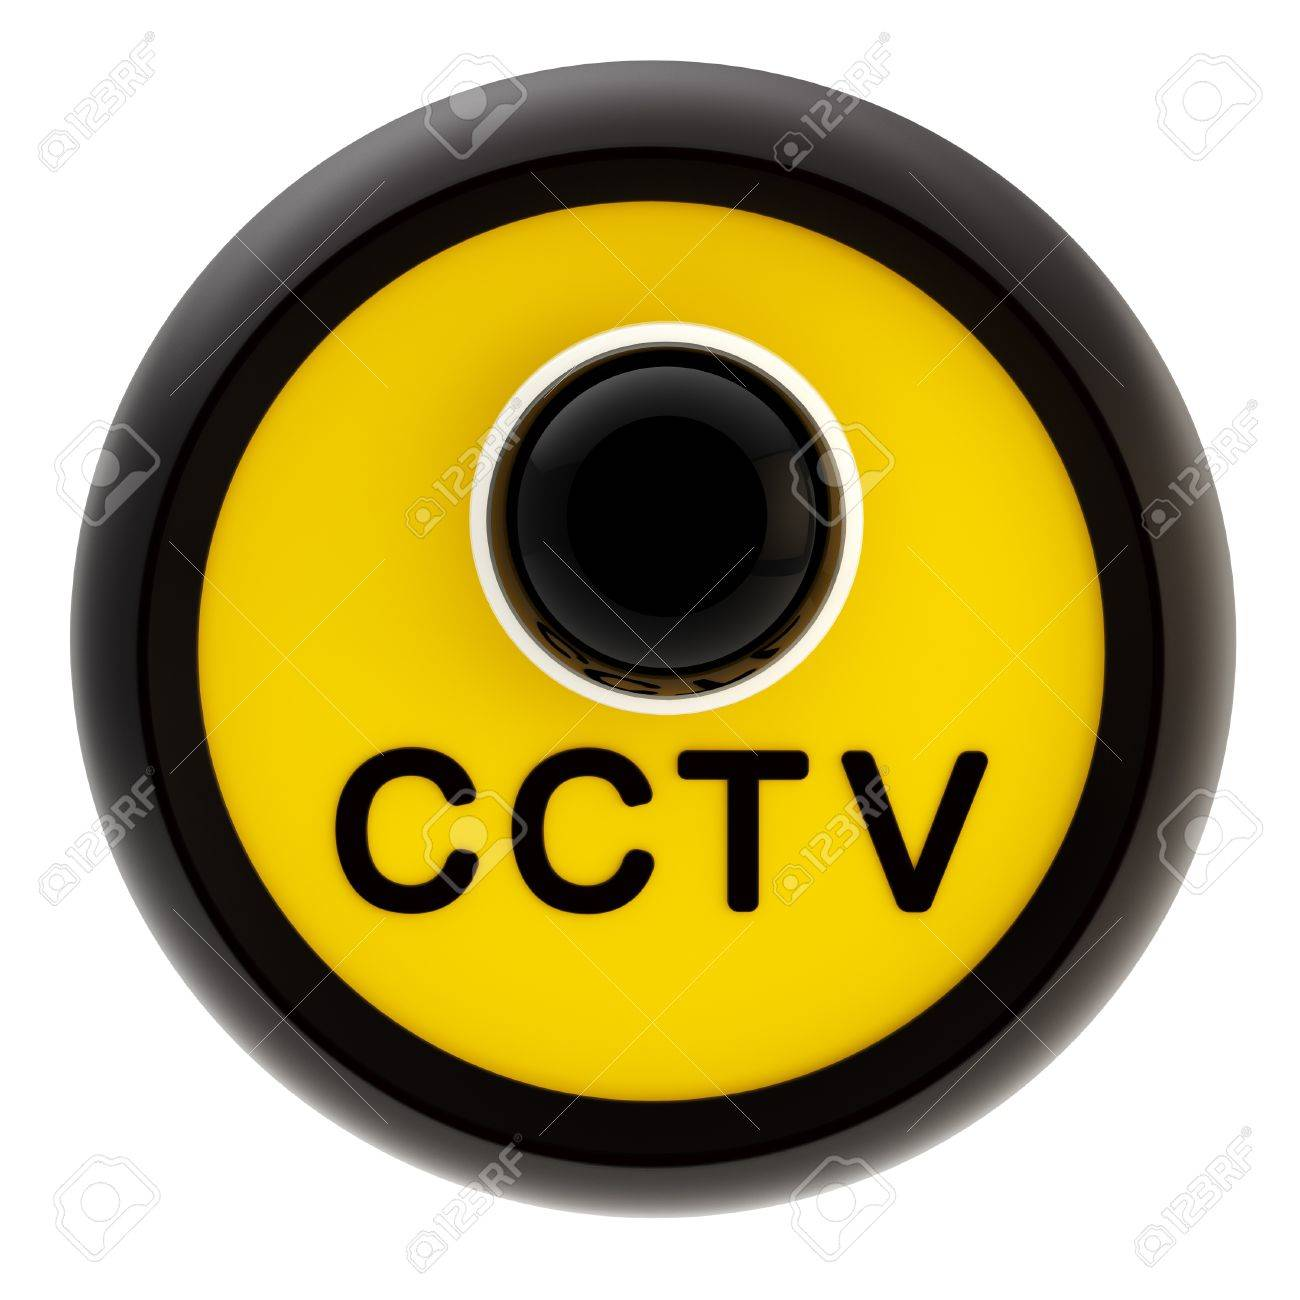 Closed circuit television alert sign Stock Photo - 13229261